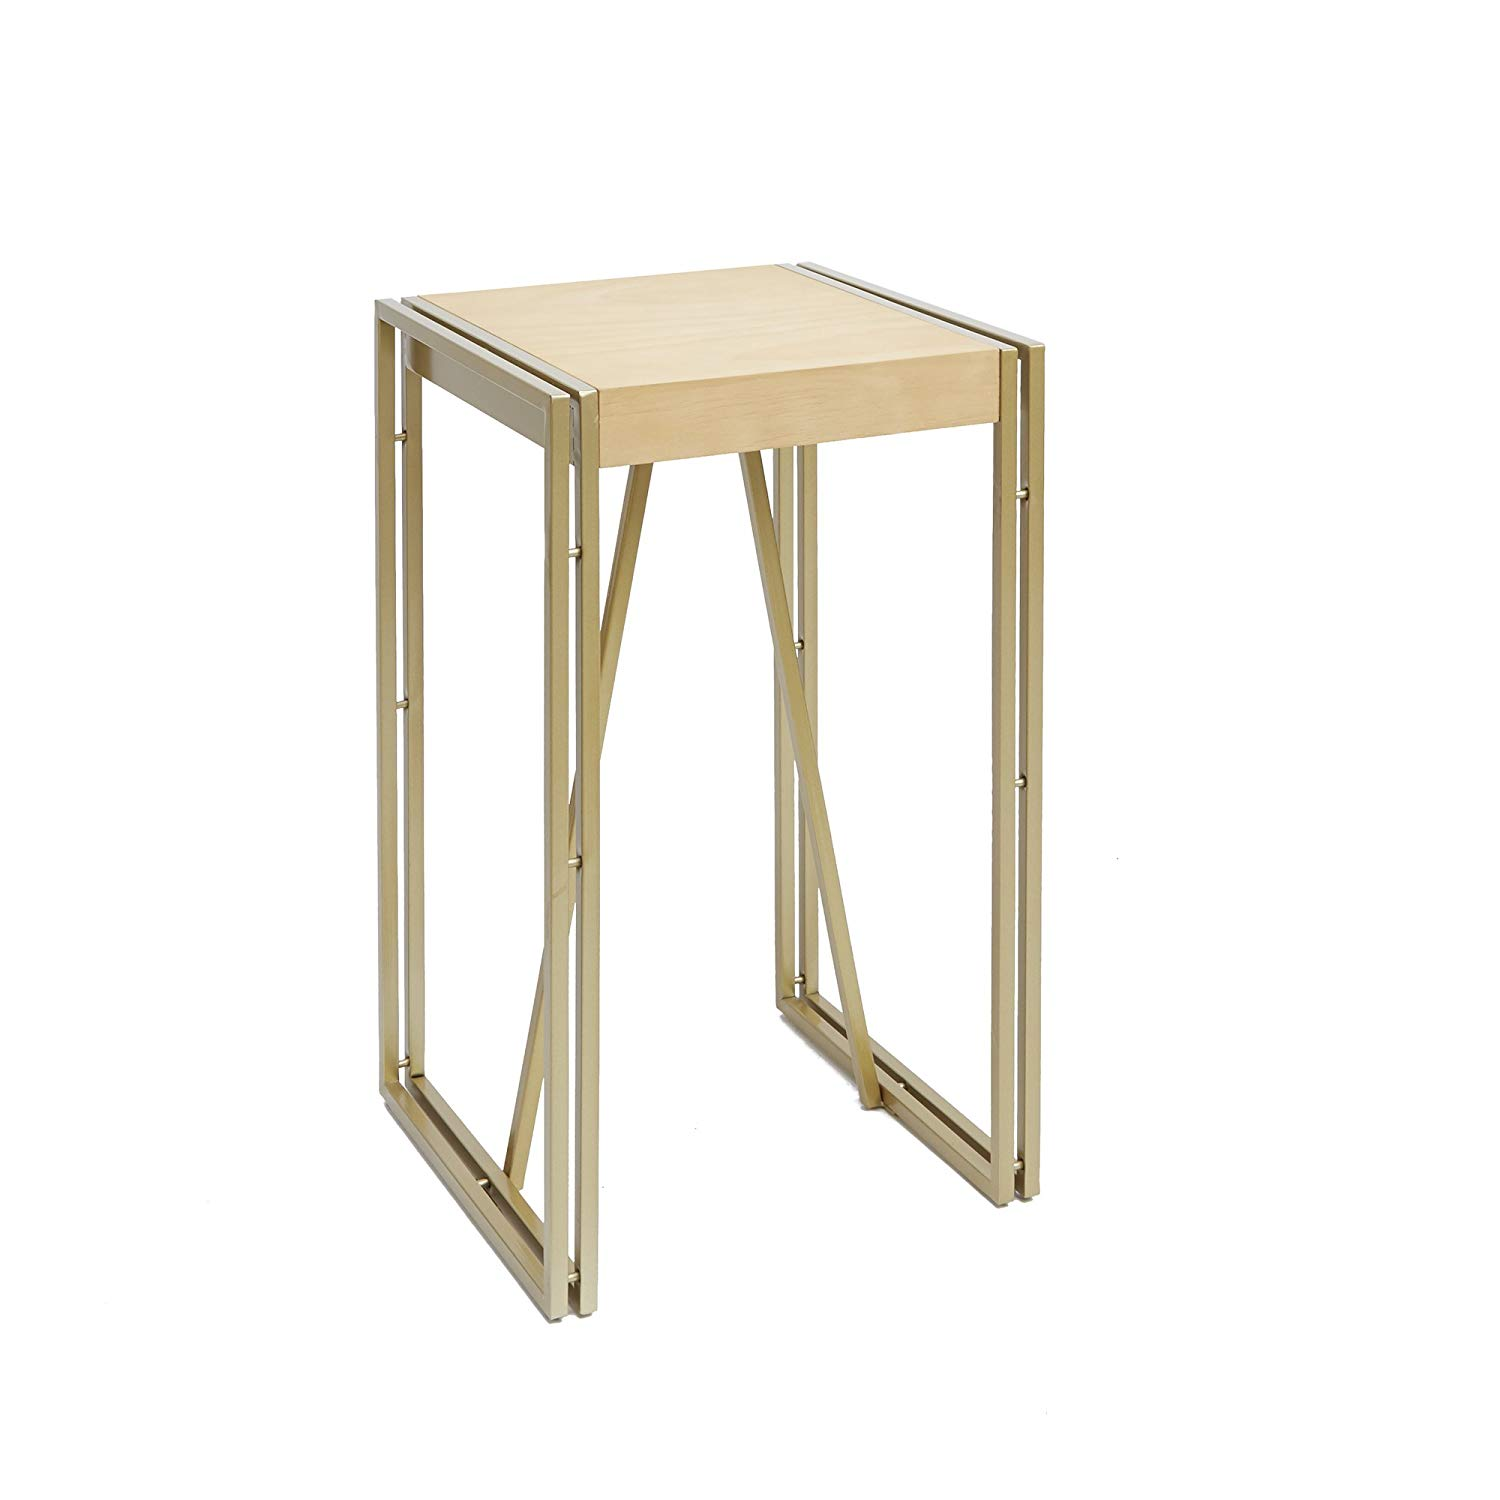 silverwood sgd lwd hudson wood and metal accent tainl round cardboard table kitchen dining berg furniture bunnings outdoor cover room gold bedside pier one bedroom sets decor